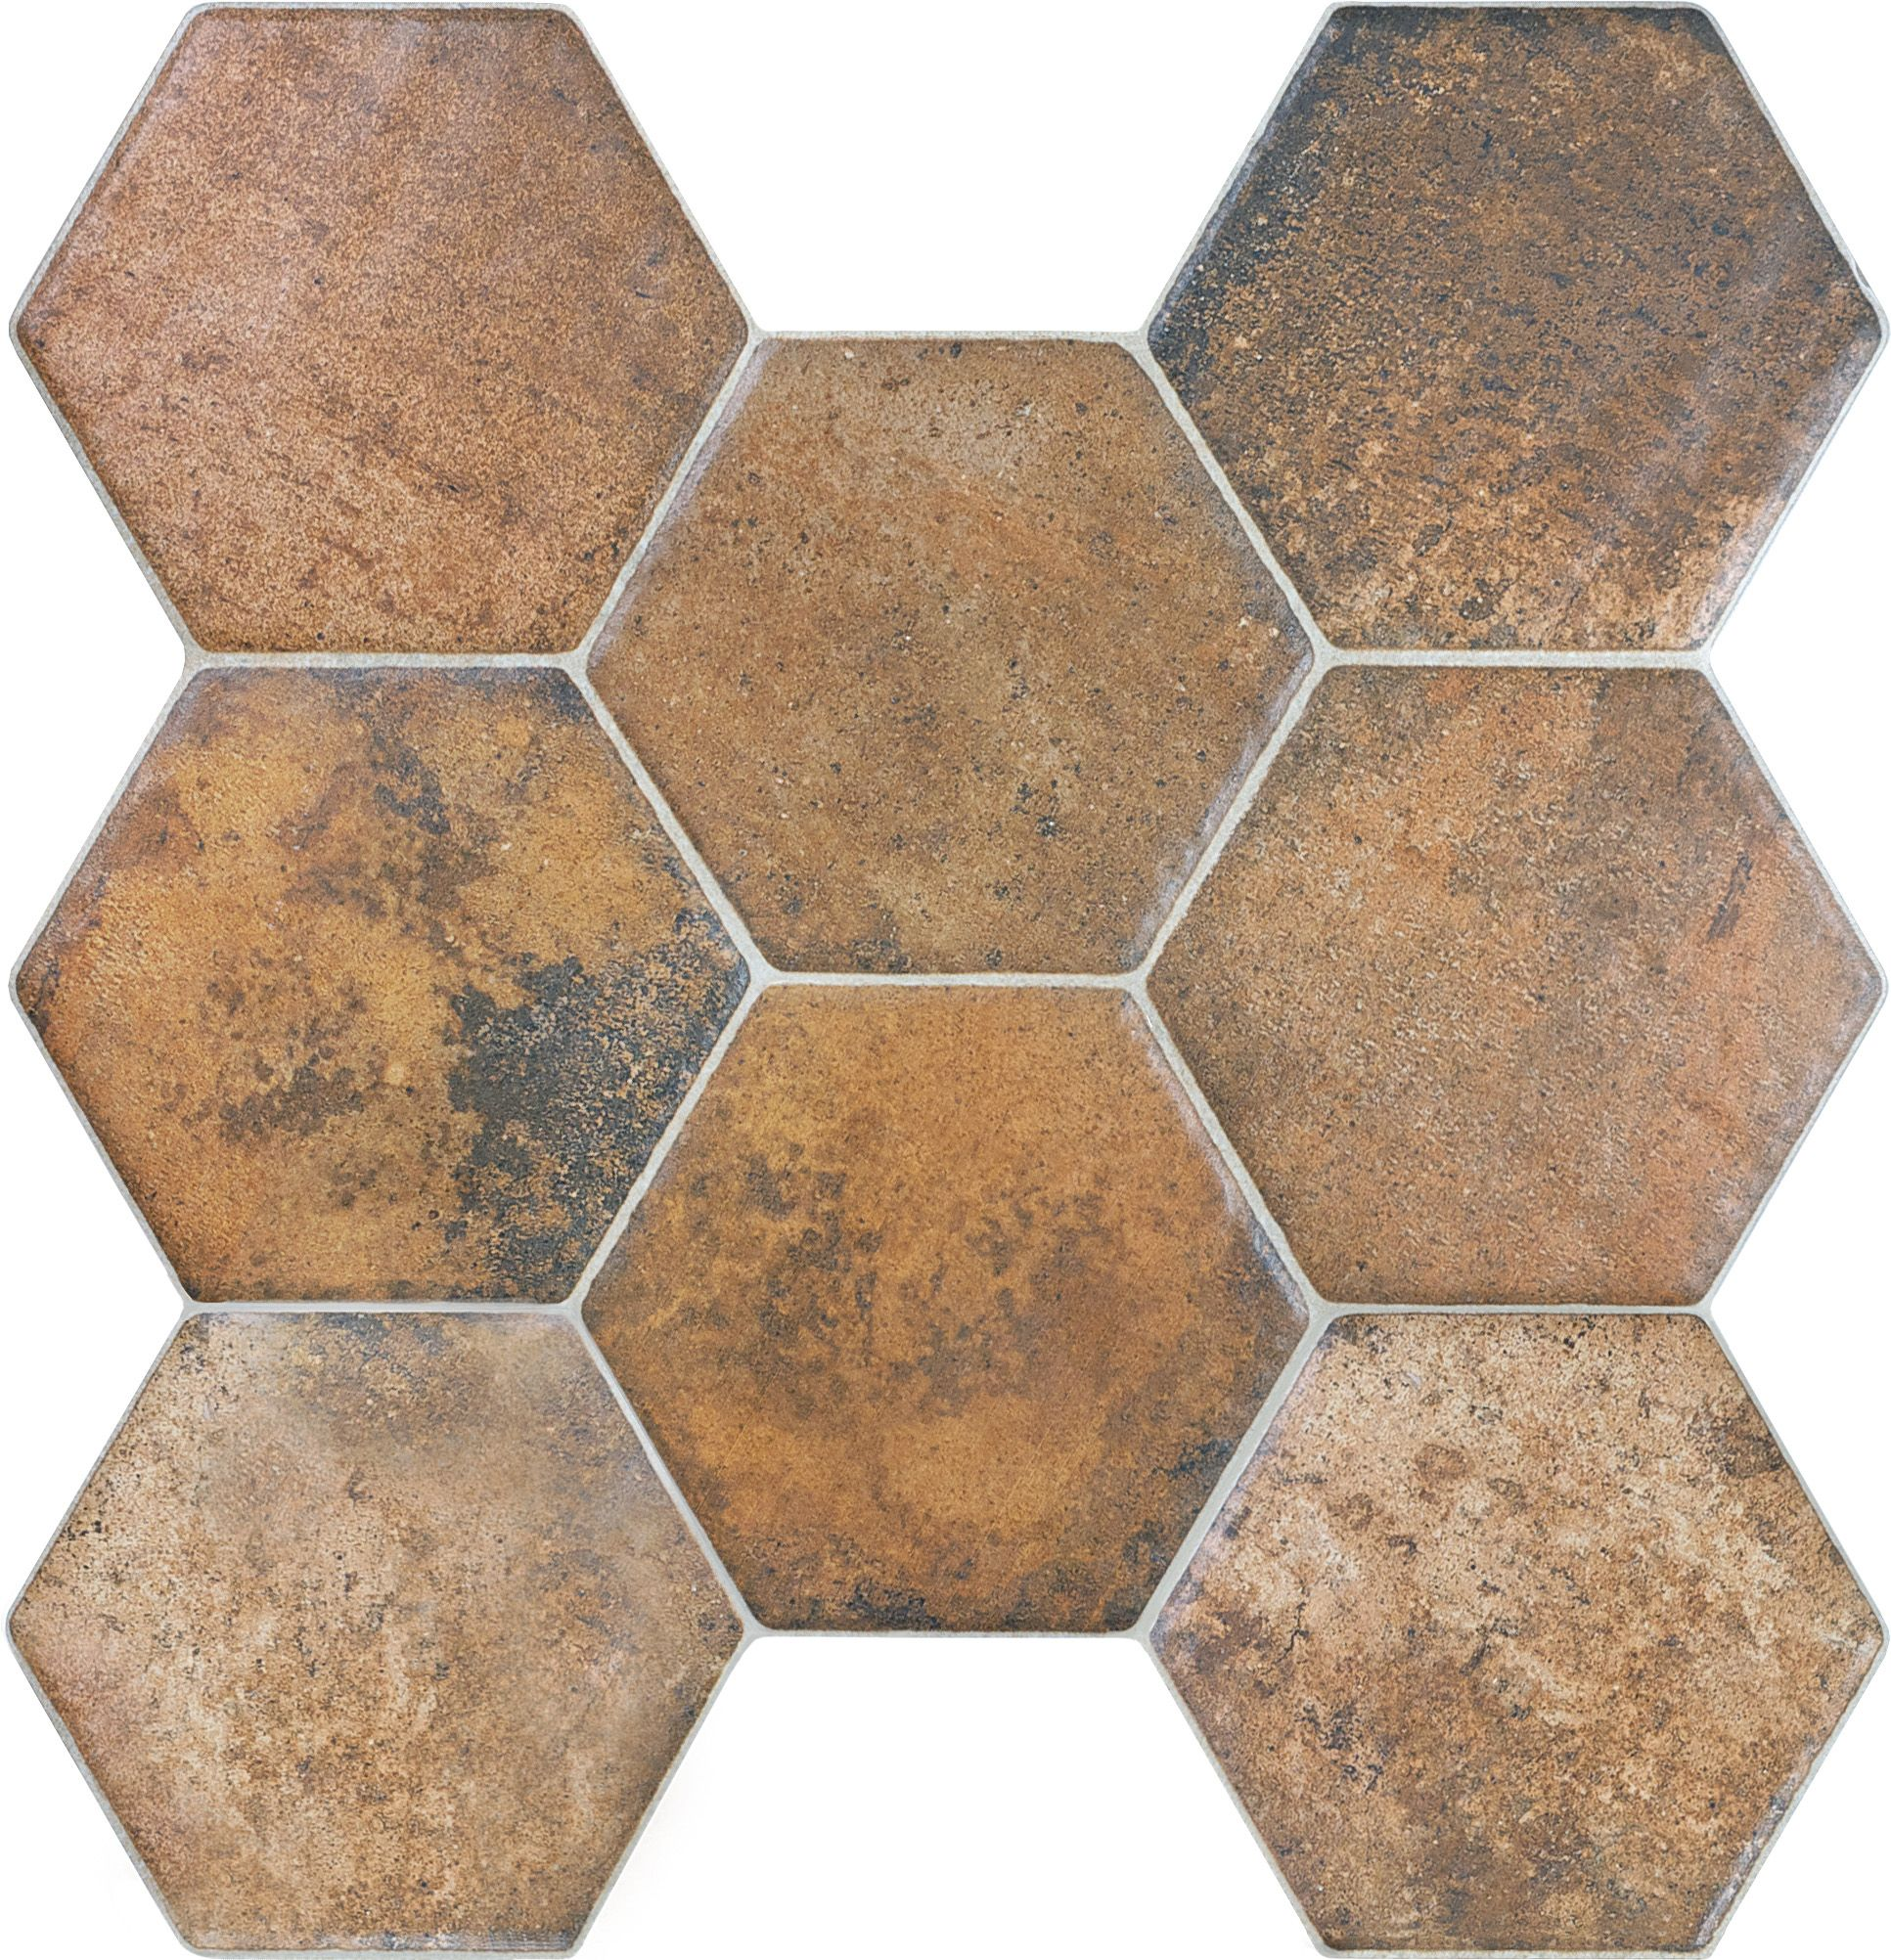 20 671 Caloca Terra Cotta Hexagon Porcelain